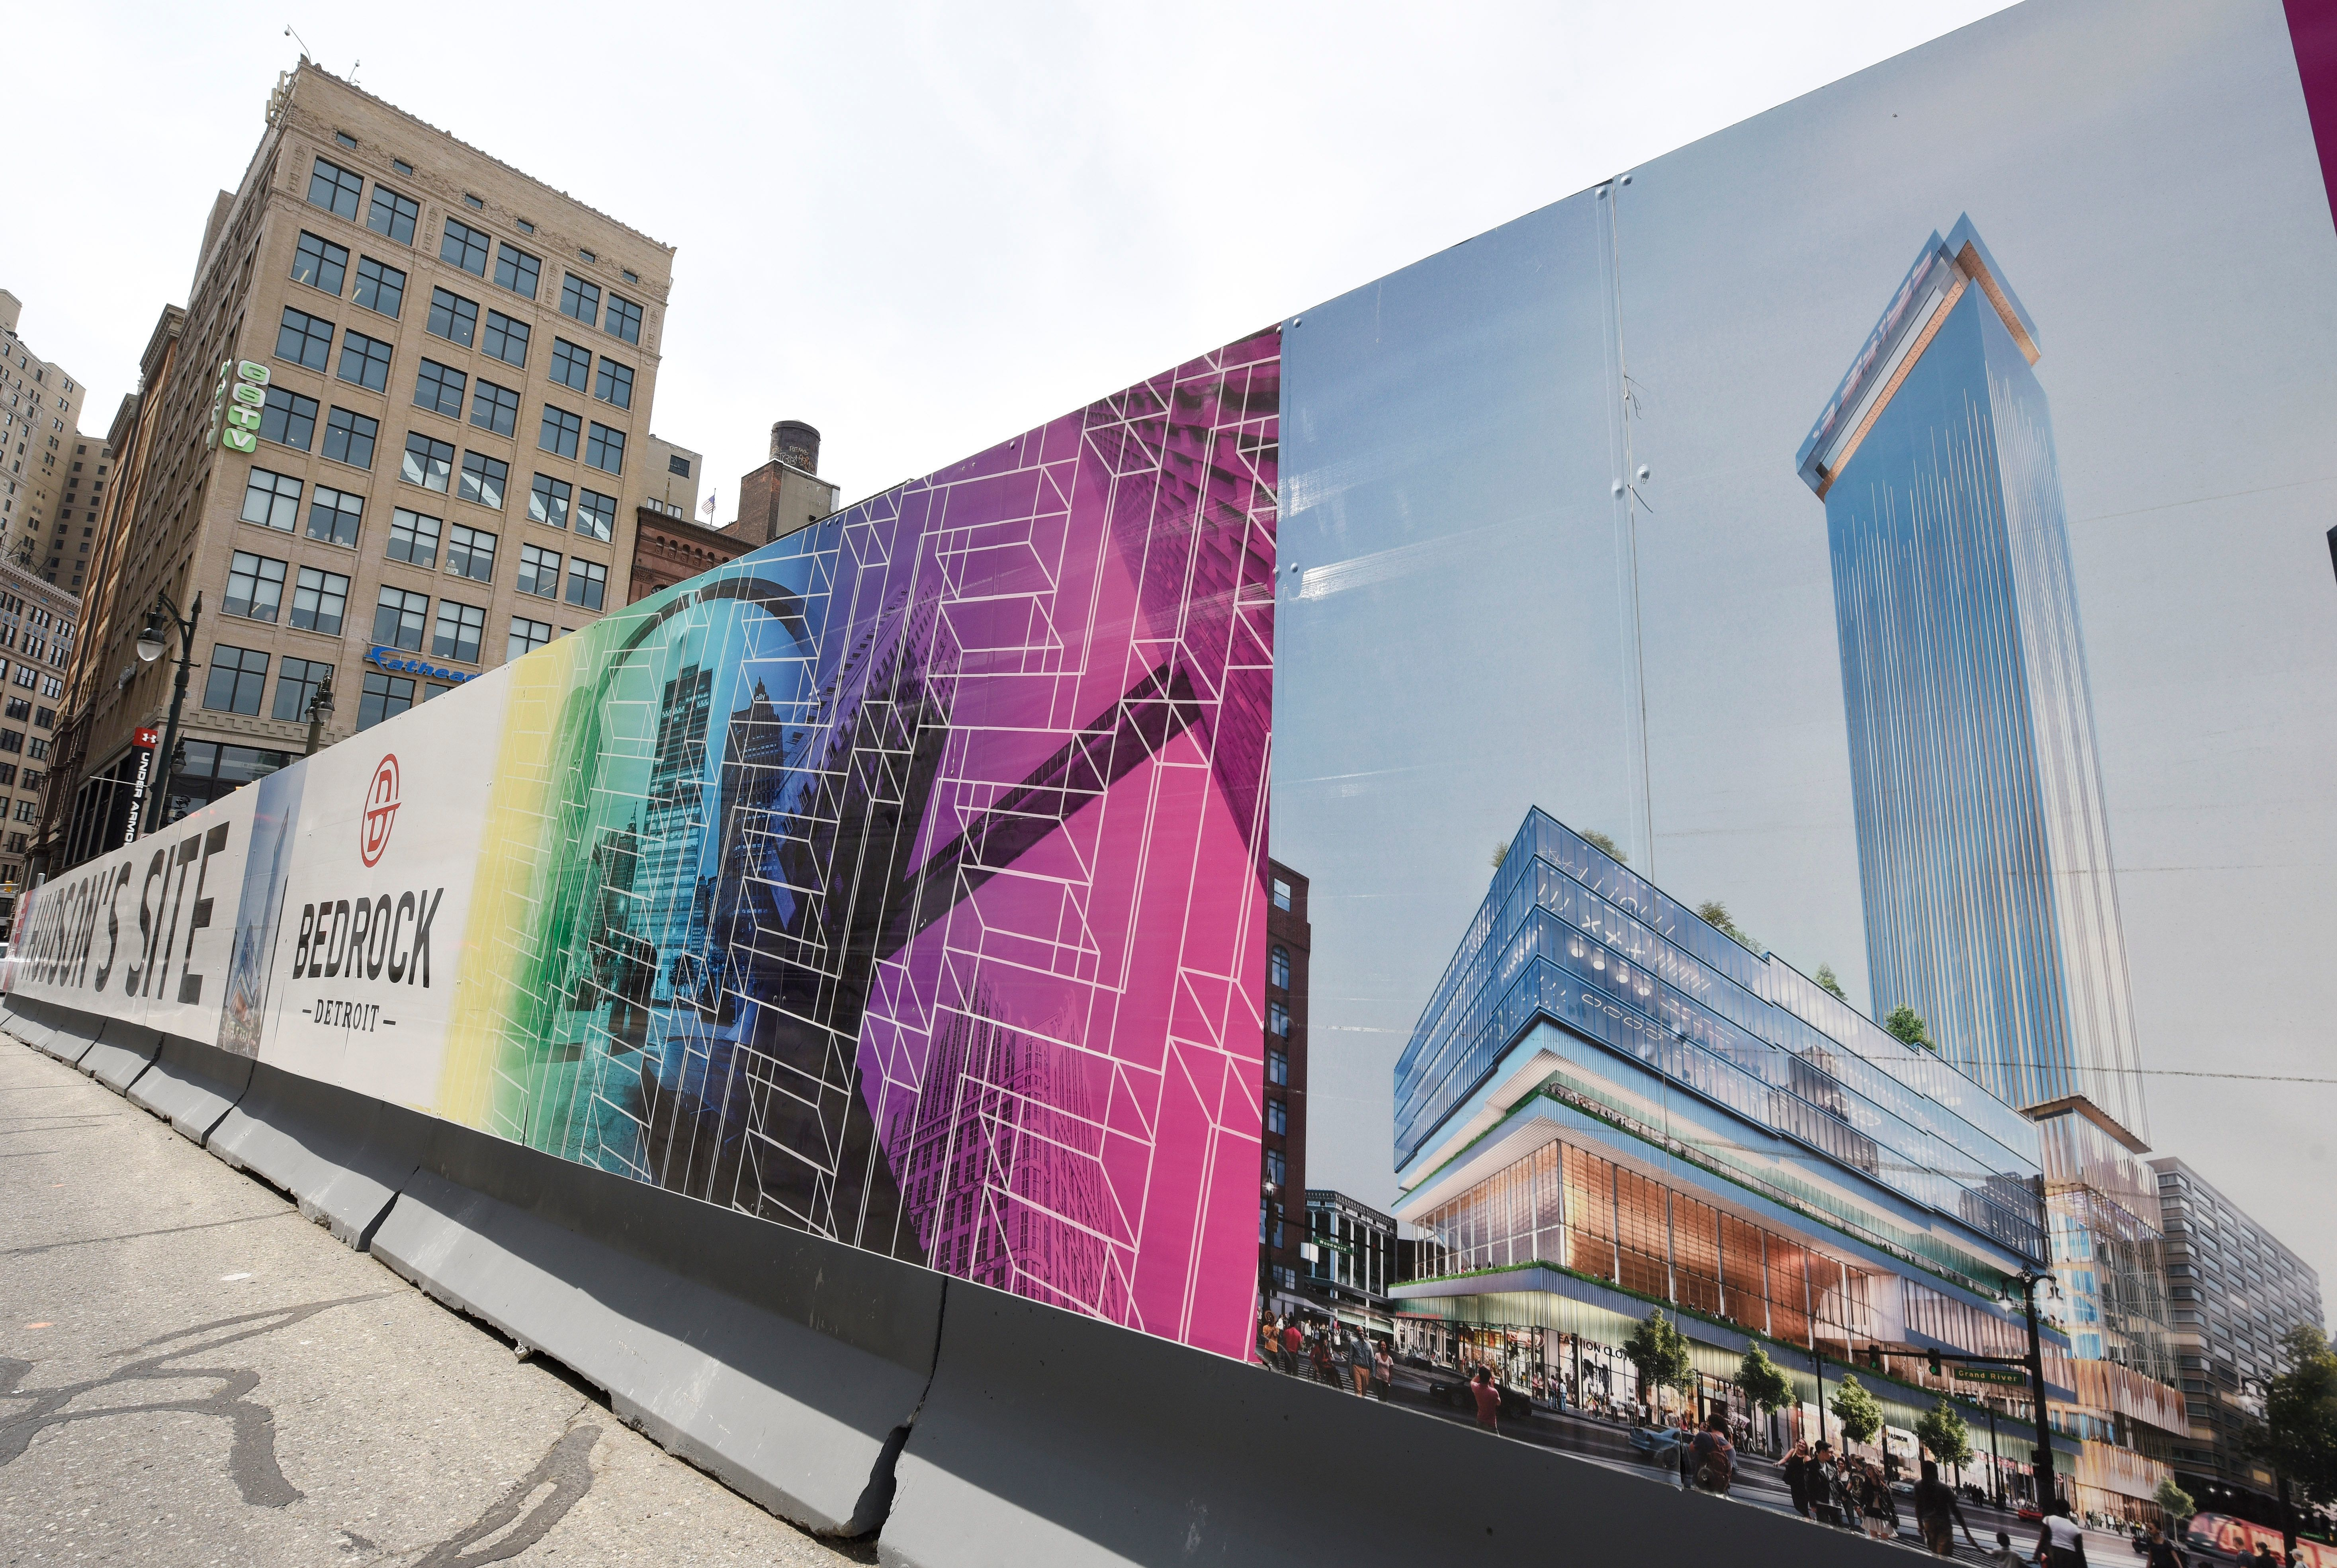 A rendering of the tower and mixed-use building that will be constructed on the Hudson's site adorns Bedrock's sign at Woodward at Gratiot.